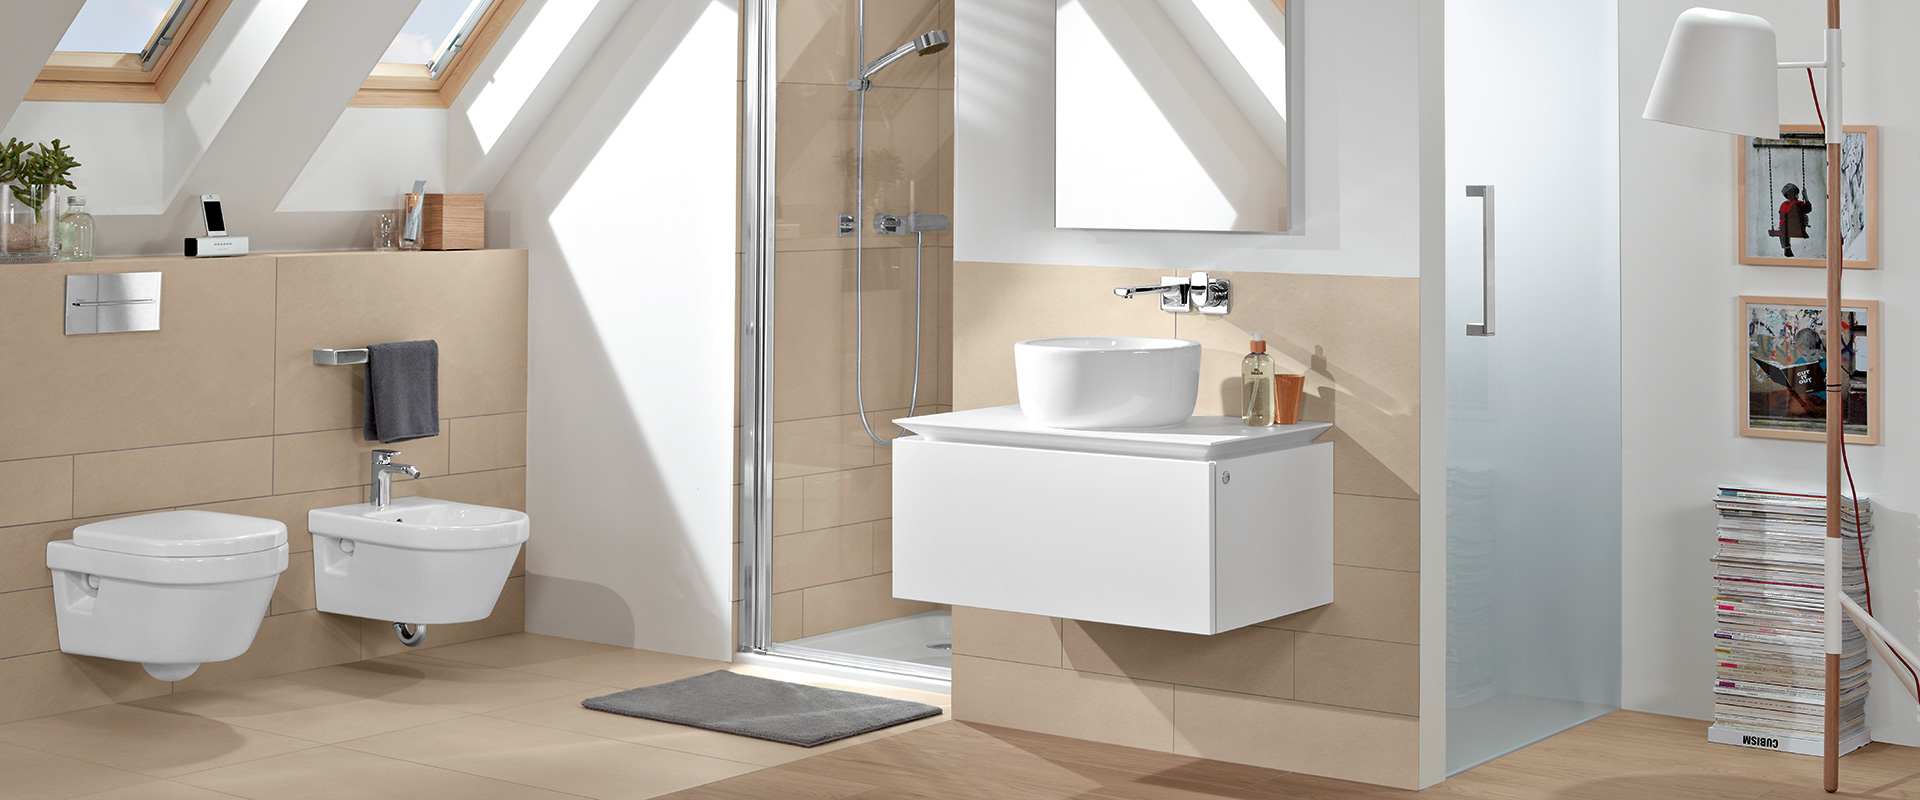 architectura cer - Villeroy And Boch Bathroom Cabinets